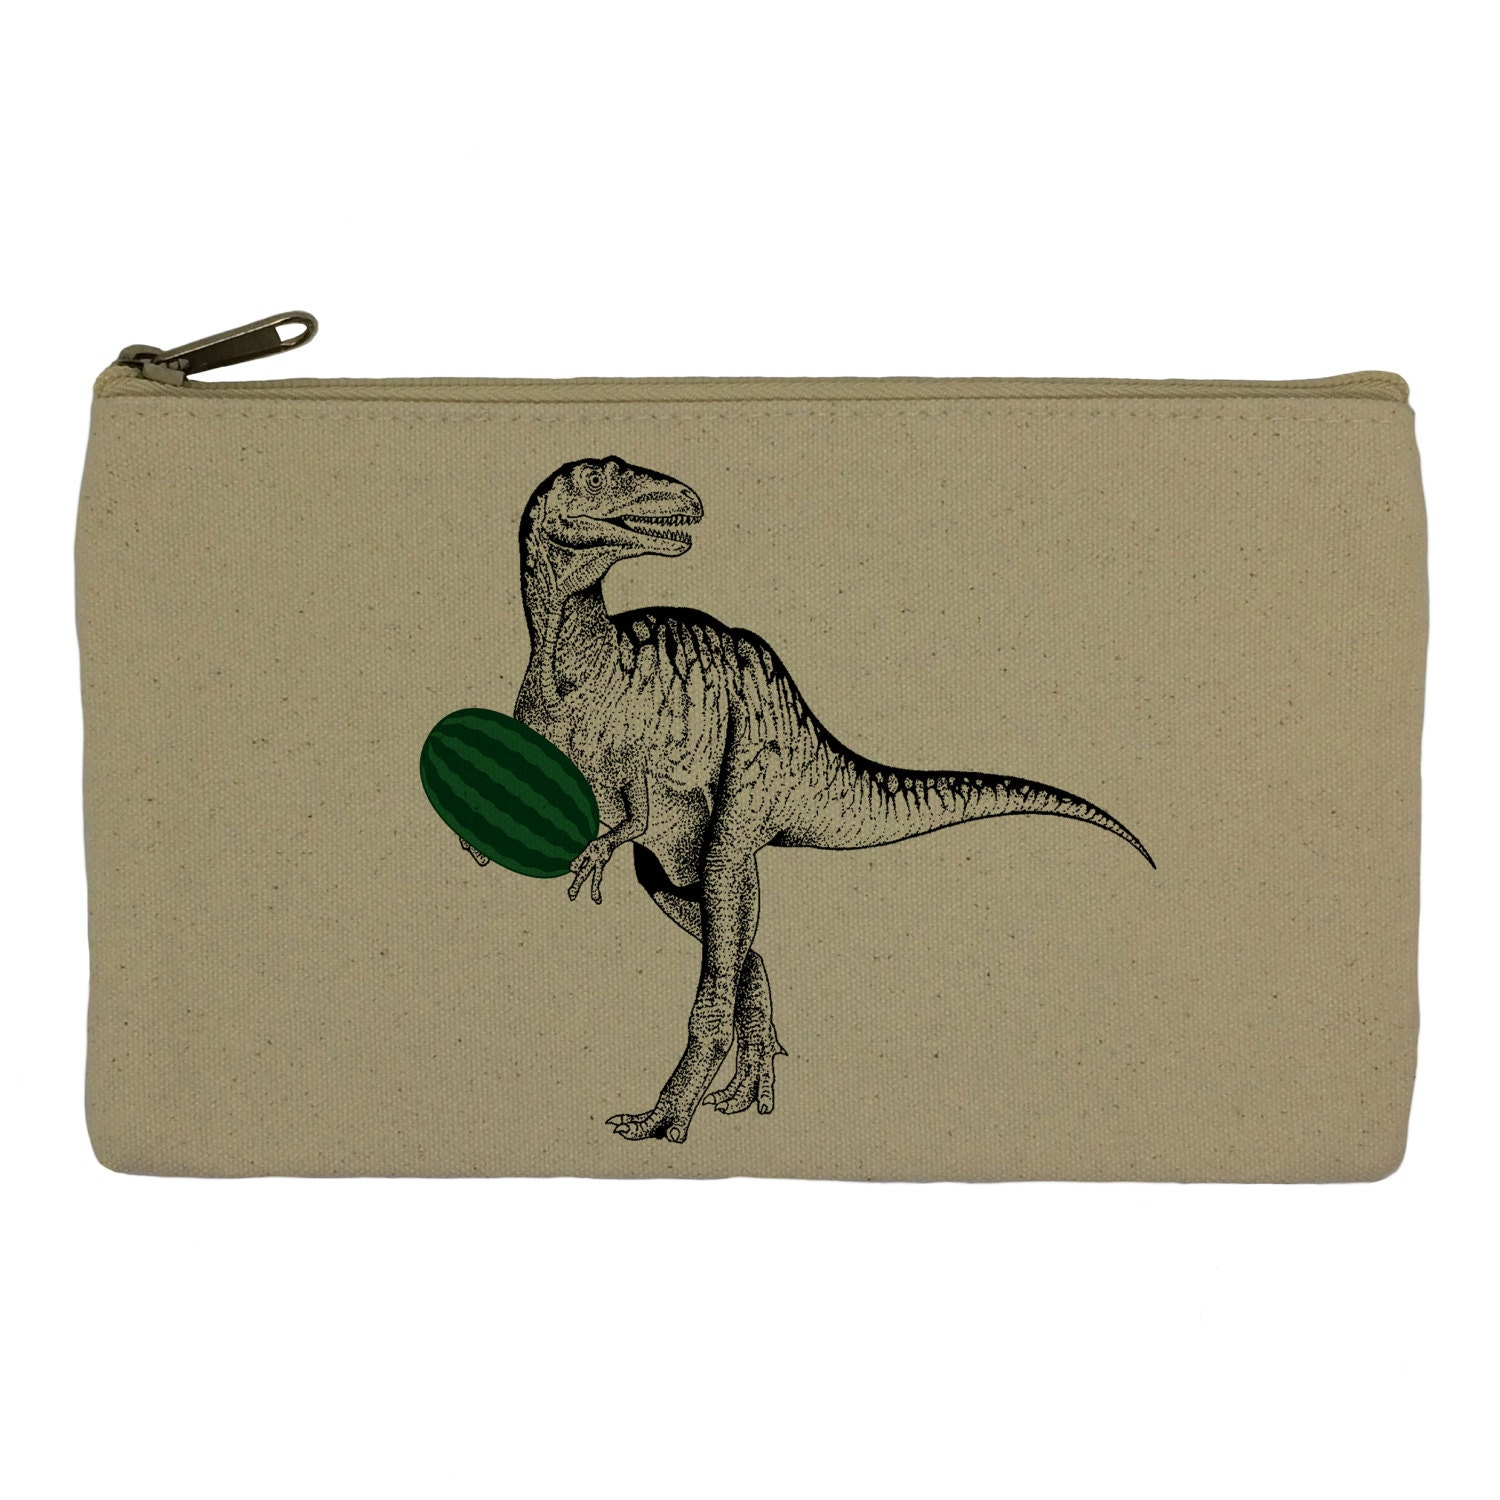 Pencil case stationary dinosaur with watermelon pencil pouch canvas bag pencil holder make up bag school supplies